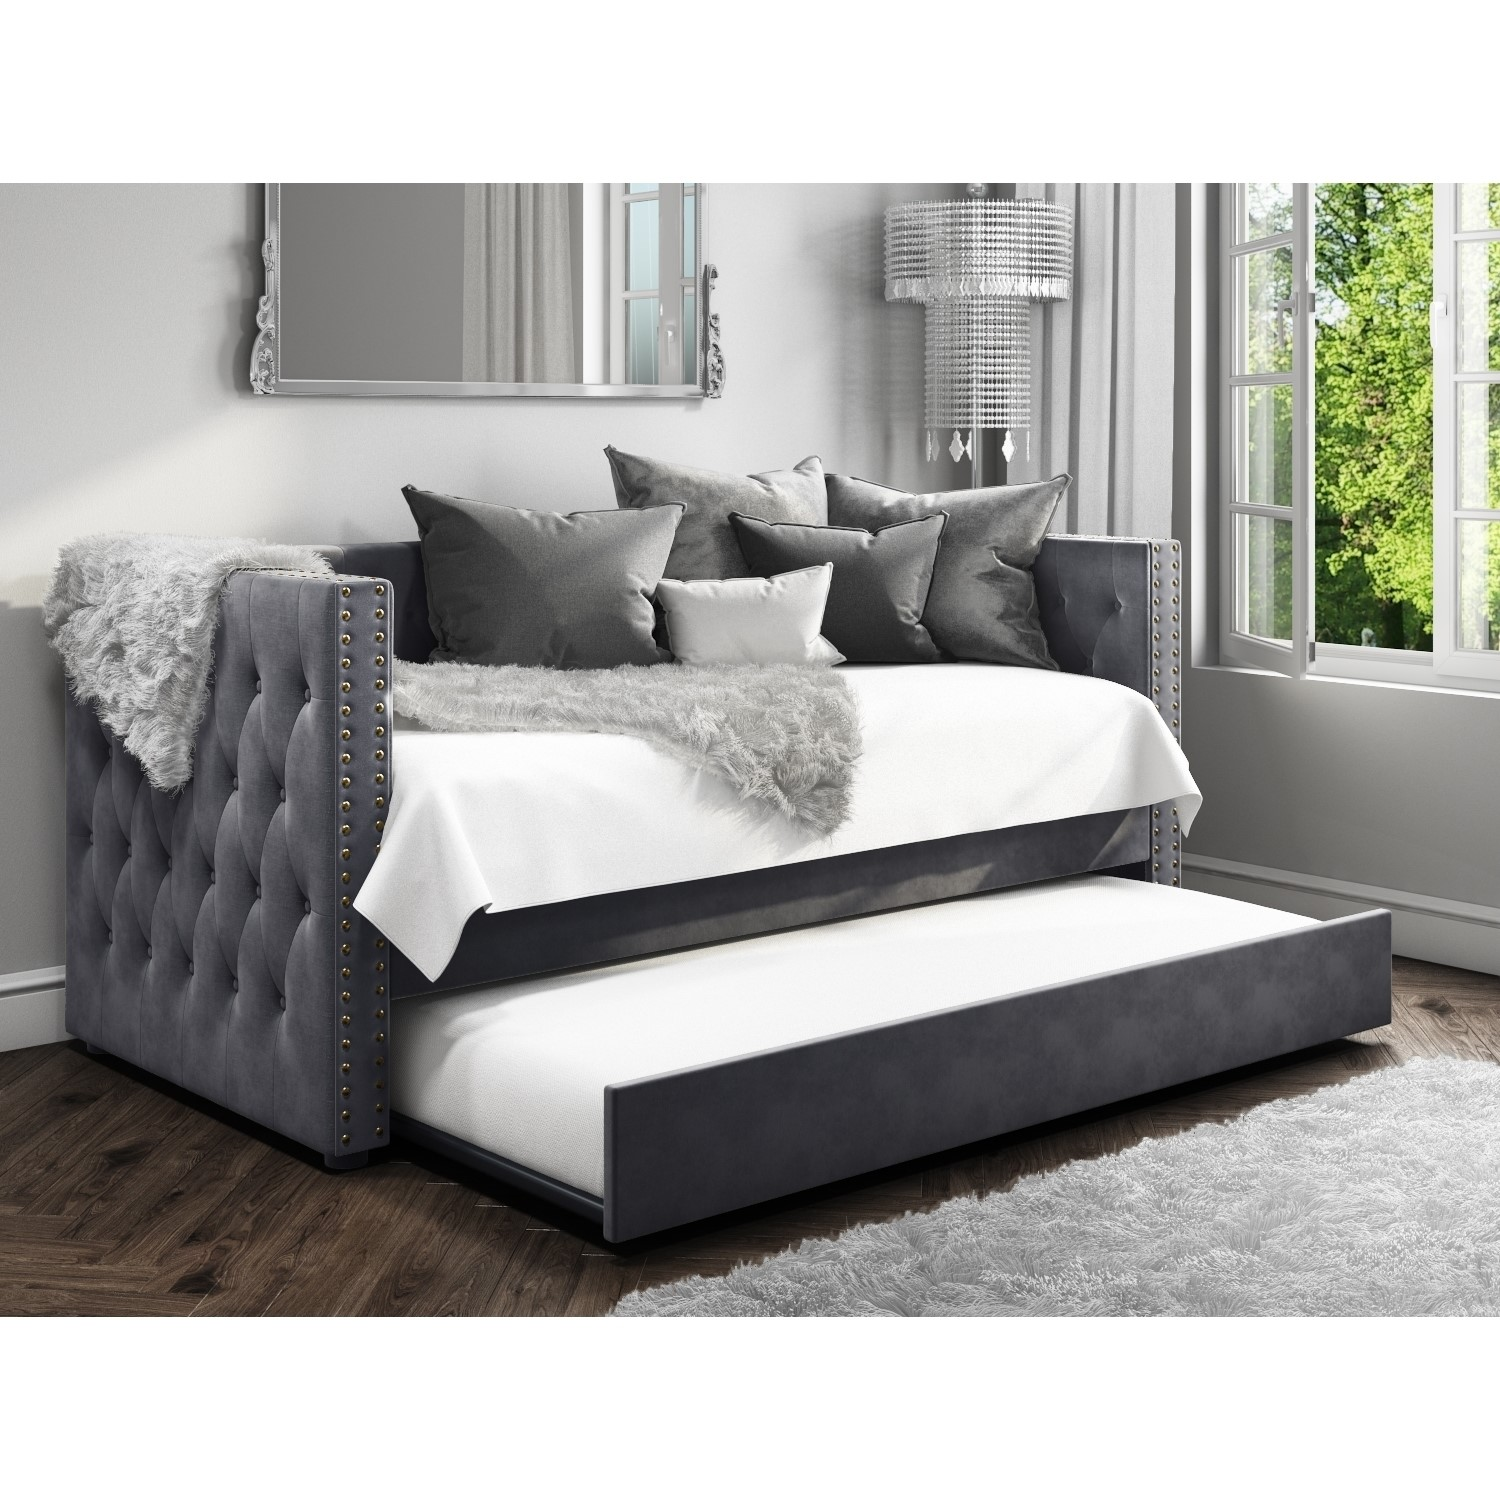 Sacha Sofa Bed In Anthracite Grey Trundle Bed Included Bun Sah002 76478 Ebay